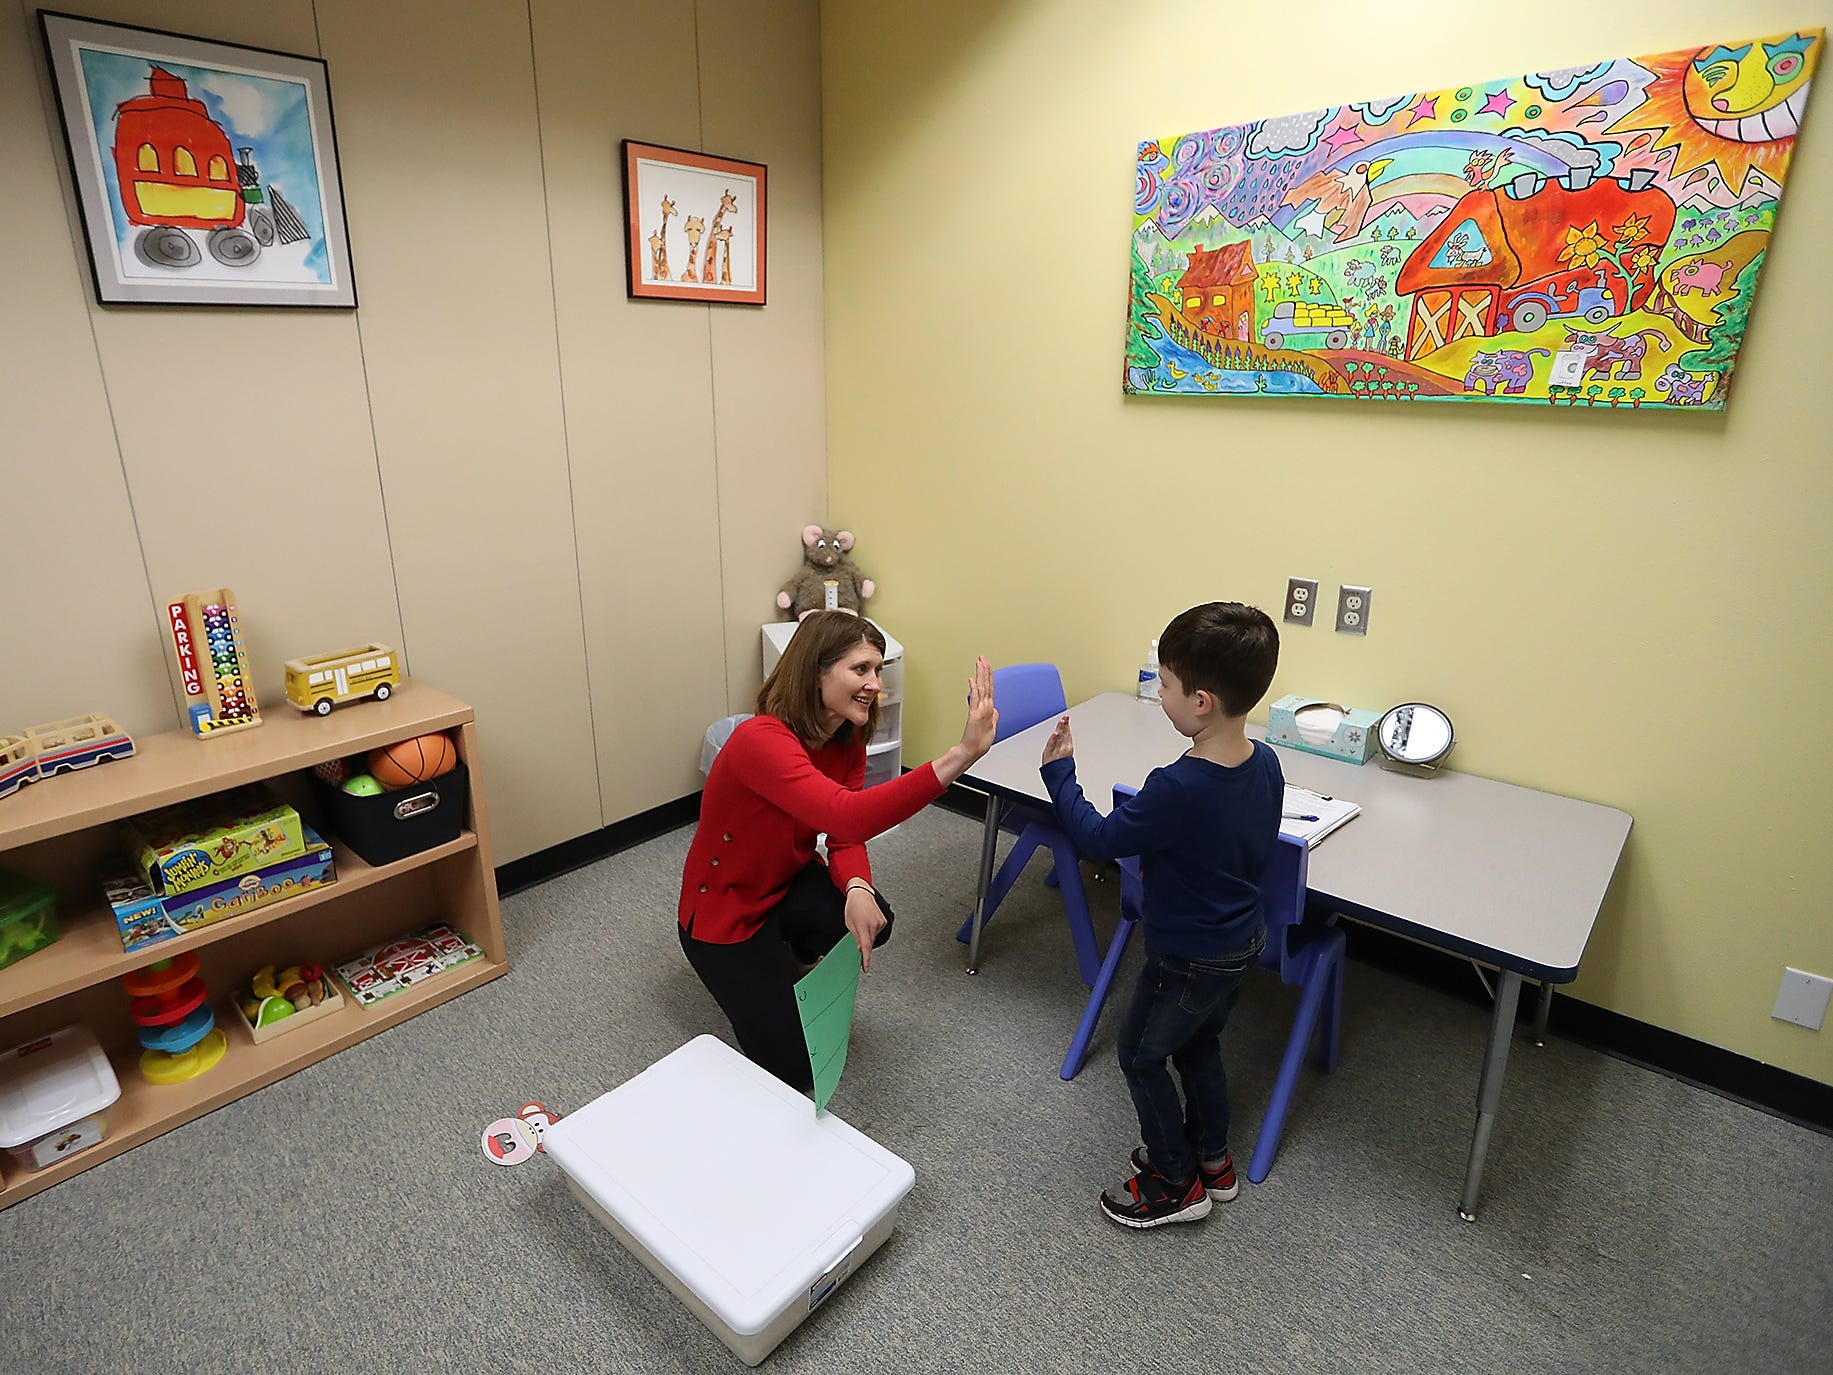 Clinic Manager / Speech Language Pathologist Beth Novak gets a high-five from Wyatt Tull, 4, at the Early Life Speech & Language clinic in Bremerton on Friday, January 25, 2019.